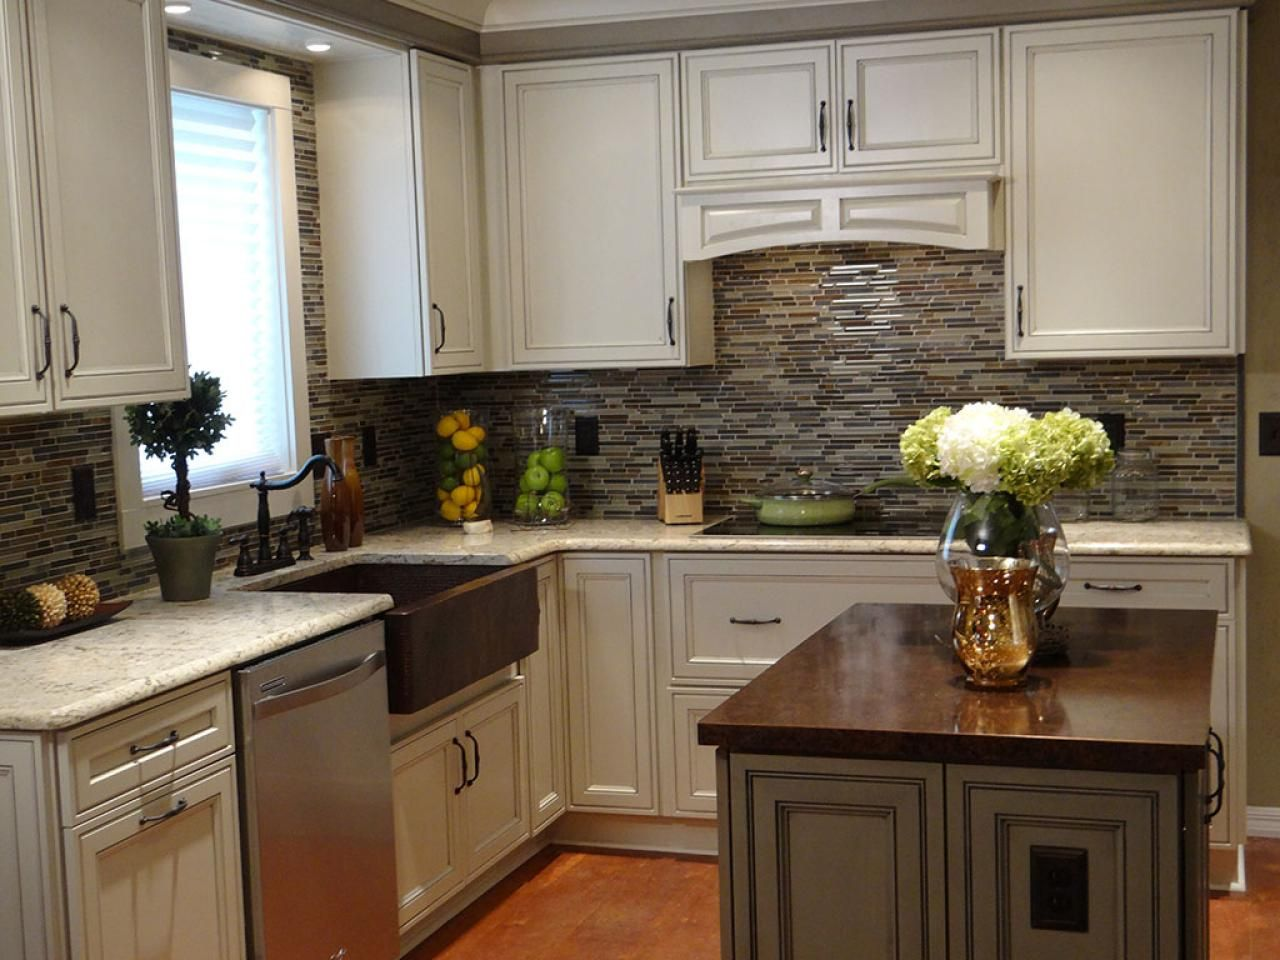 Remodel For Small Kitchen 20 Small Kitchen Makeovers By Hgtv Hosts Copper Countertops And